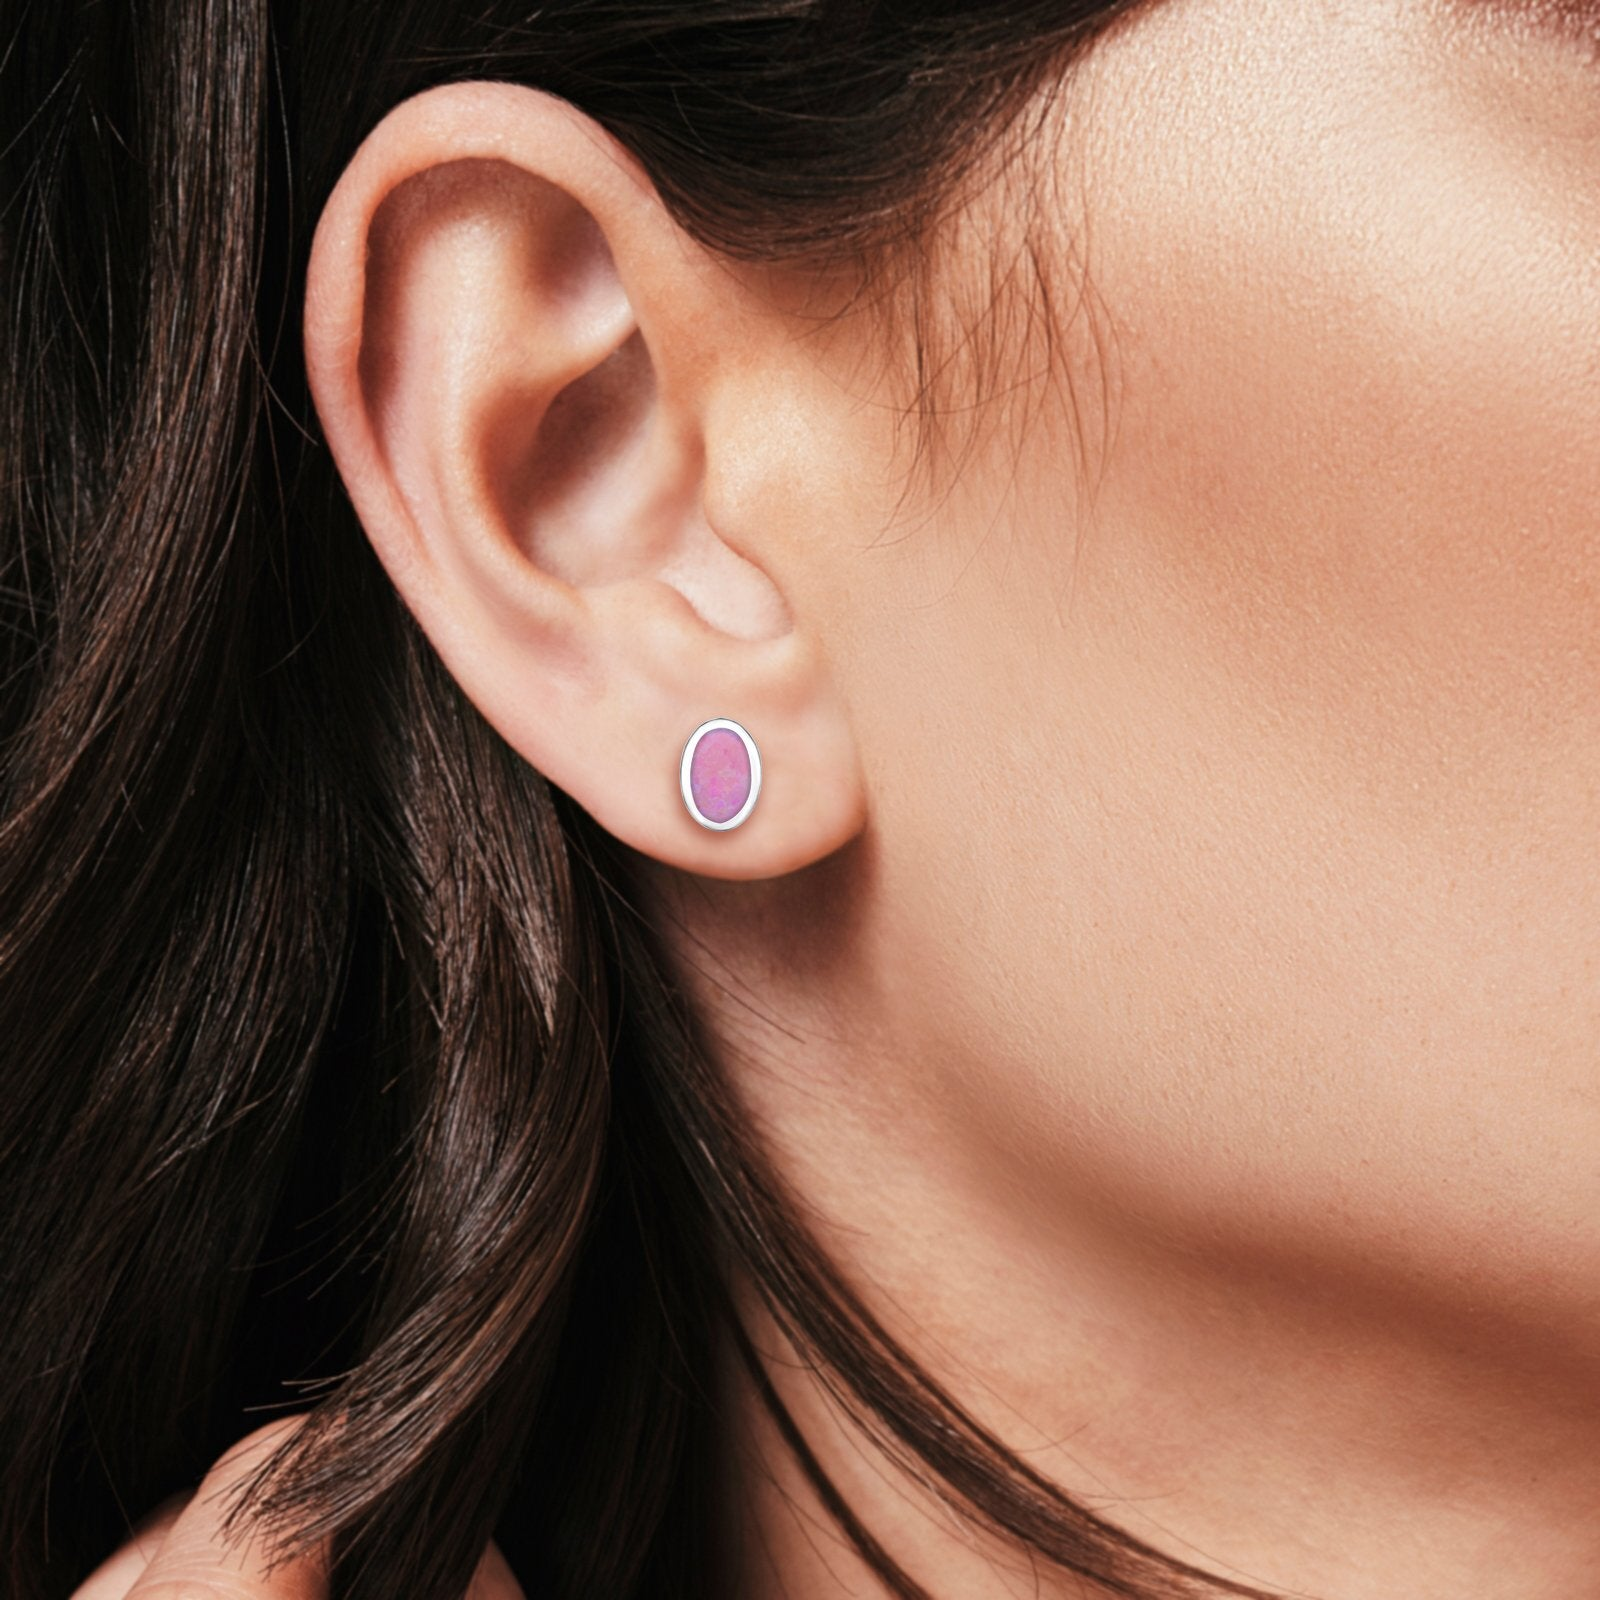 Solitaire Oval Stud Earrings Lab Created Pink Opal 925 Sterling Silver